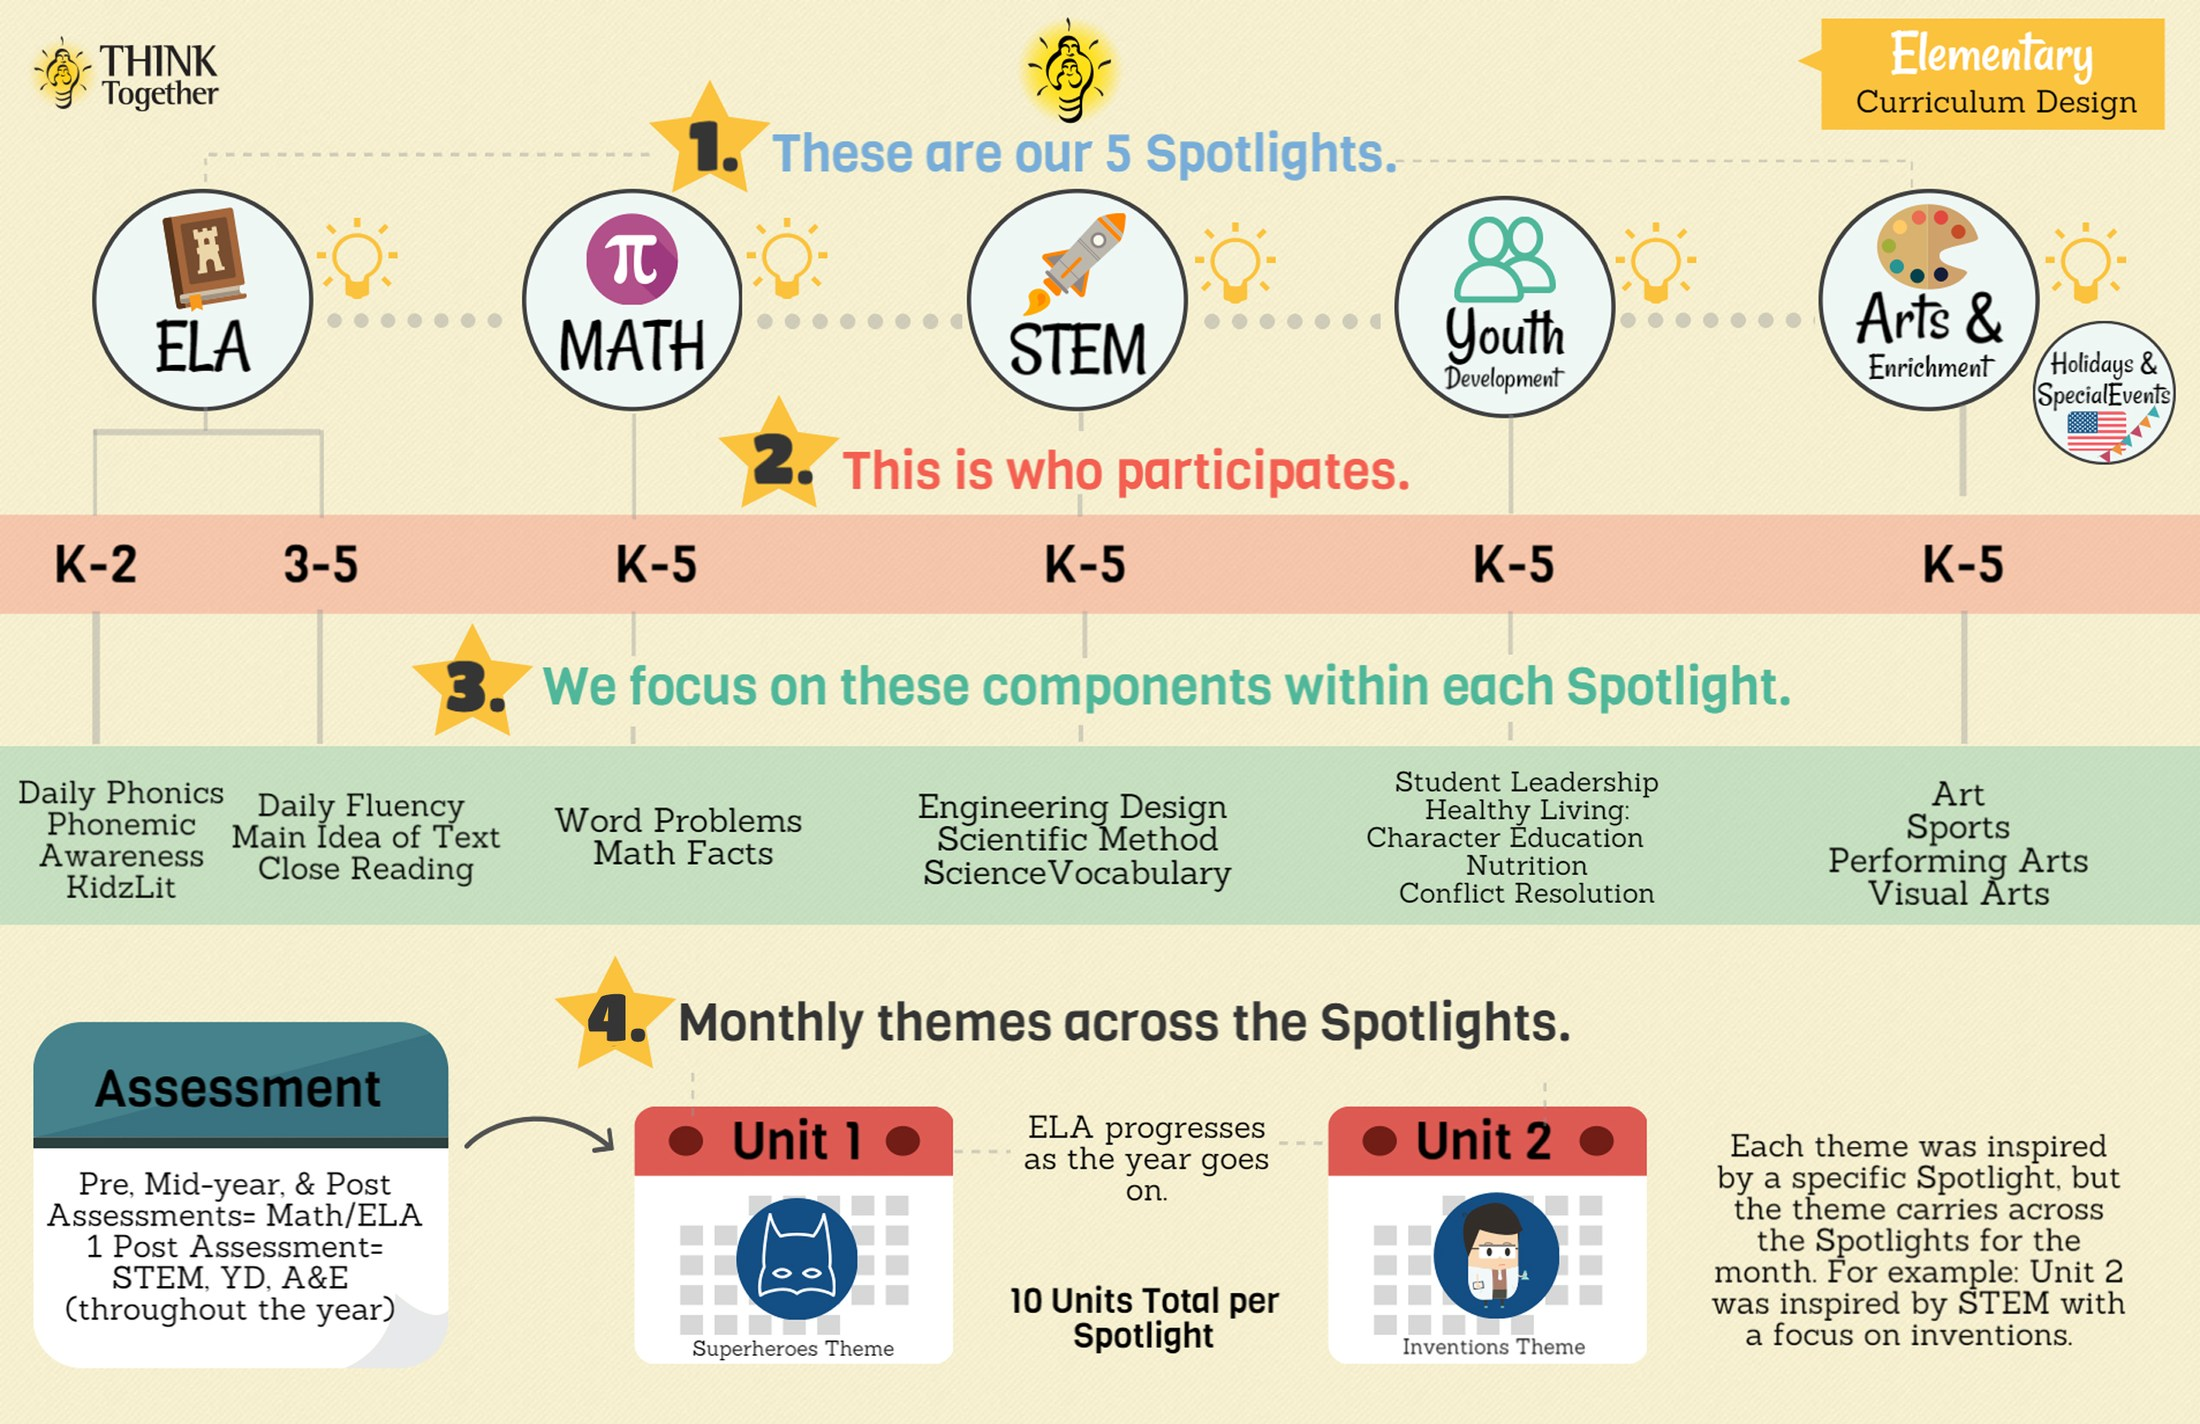 ASES-Think Together Program schematic for Elementary